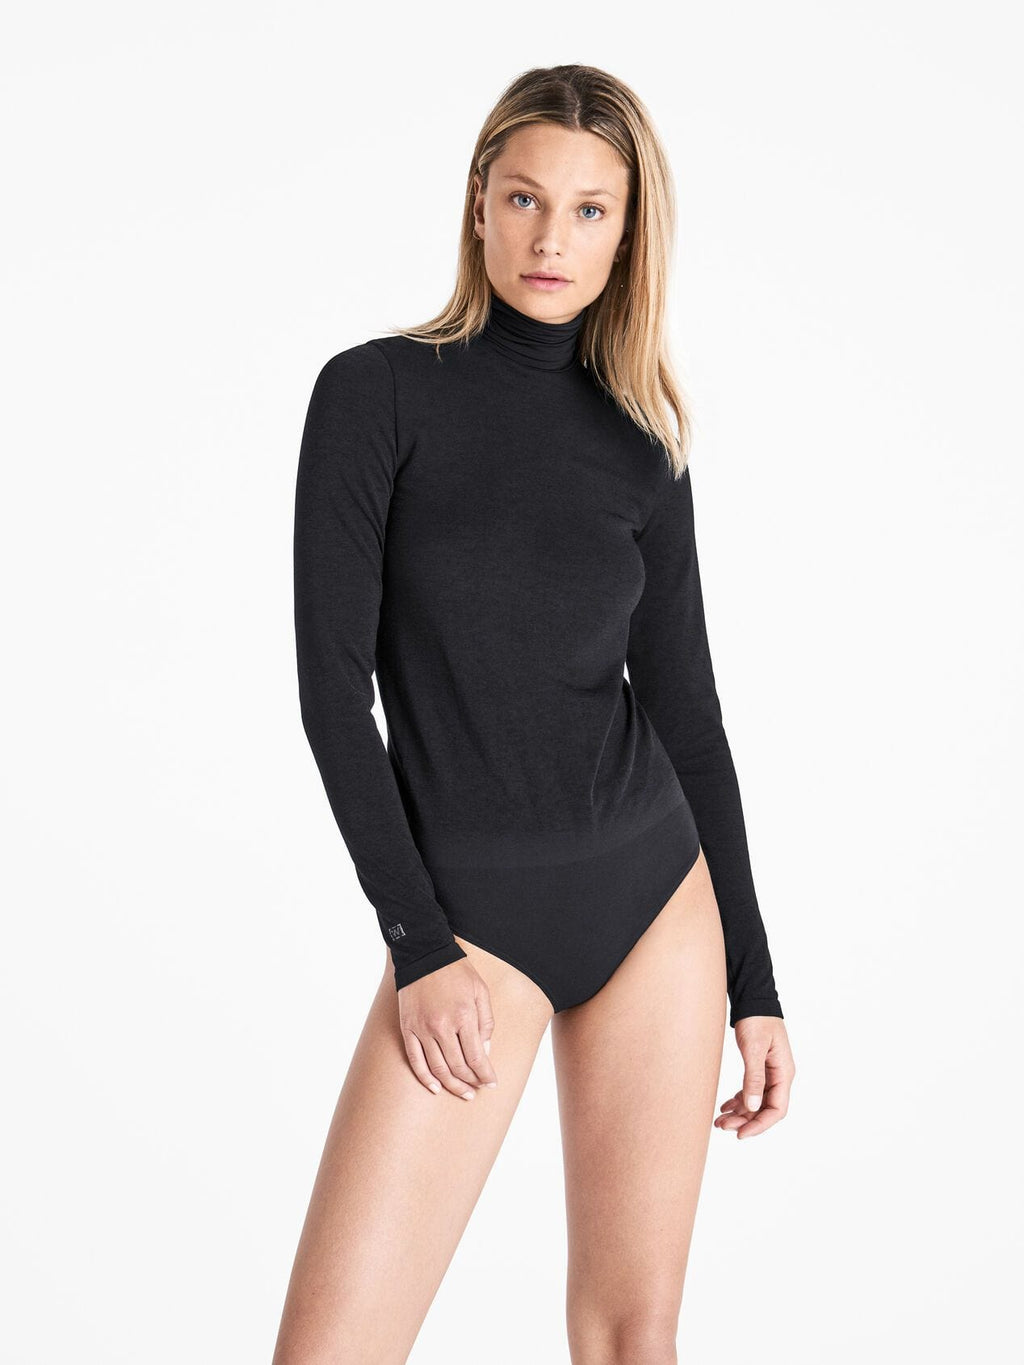 Wolford Ready To Wear By Wolford Wolford Black/Ash Colorado String Body izzi-of-baslow